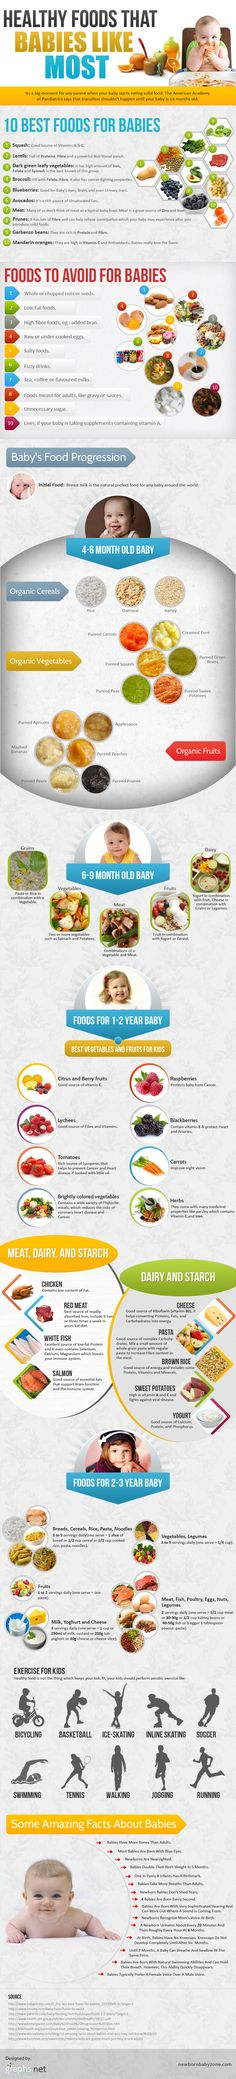 Foods For Baby and Baby Facts